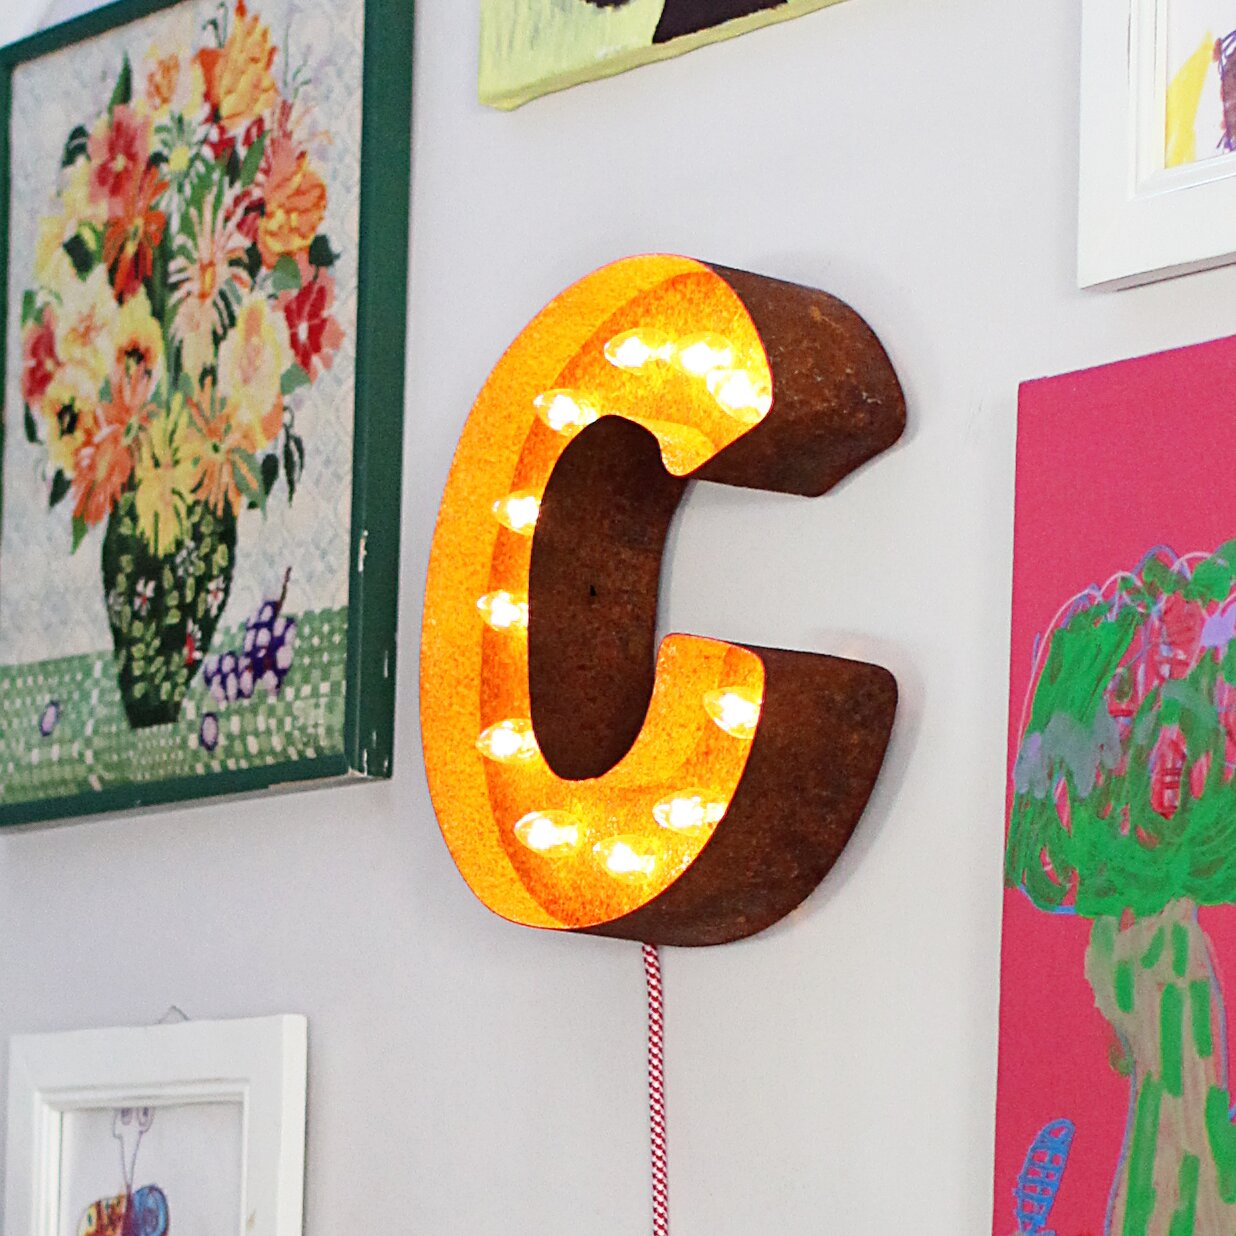 Vintage Star Wall Decor : Vintage marquee lights letter wall decor reviews